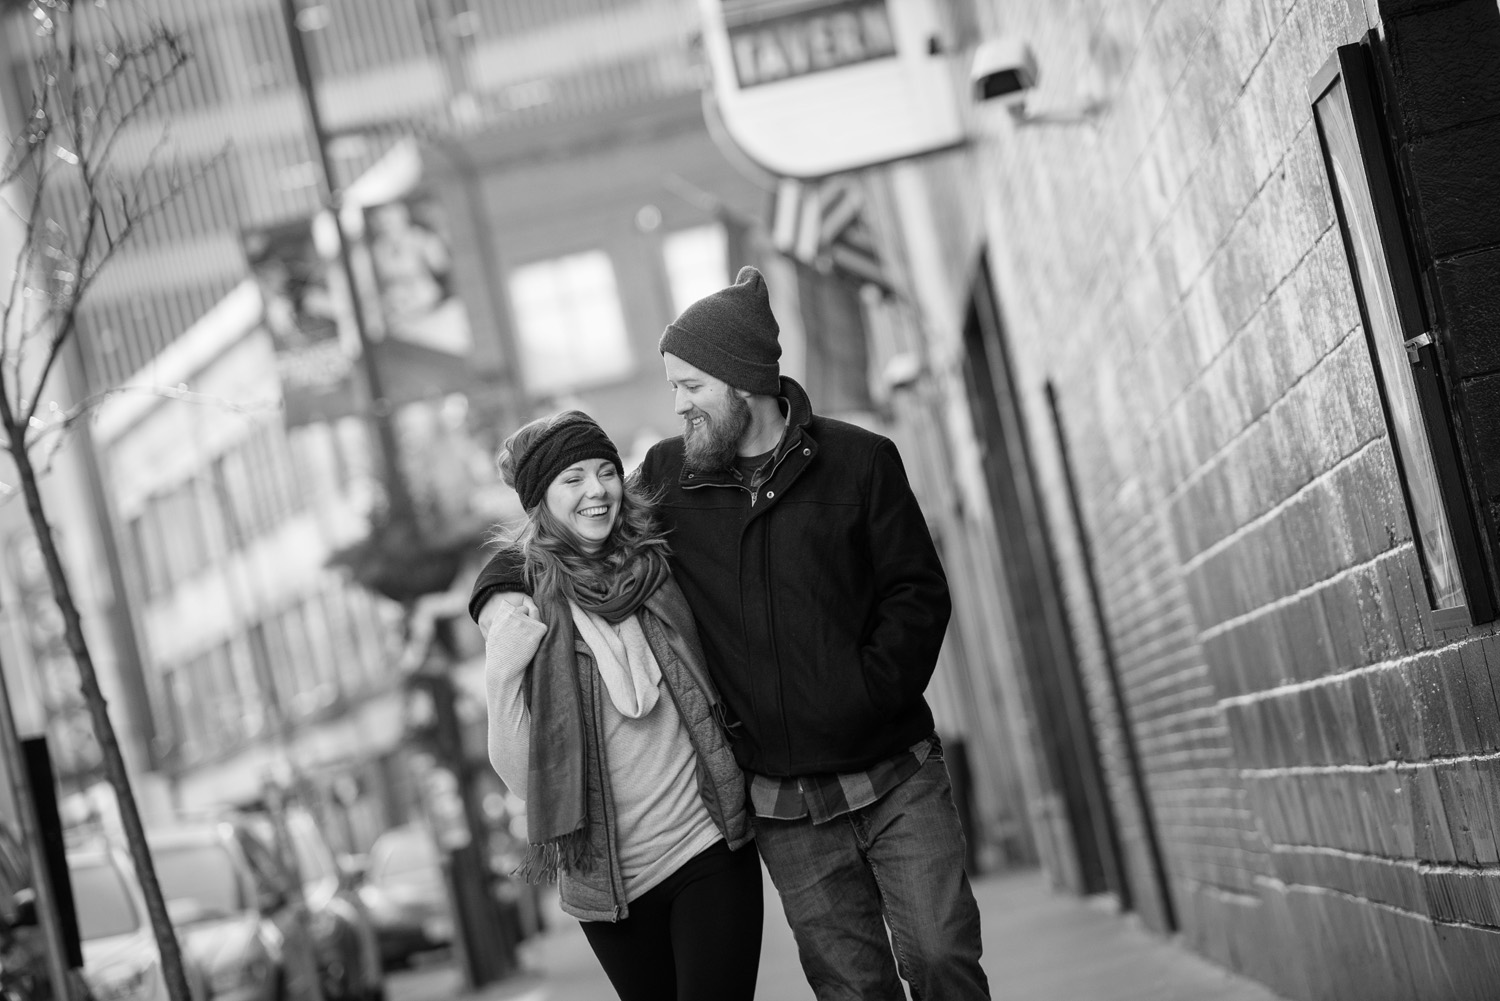 Nicole and Patrick enjoy each other's company as they walk down Seventh Street during their Minneapolis engagement photo session